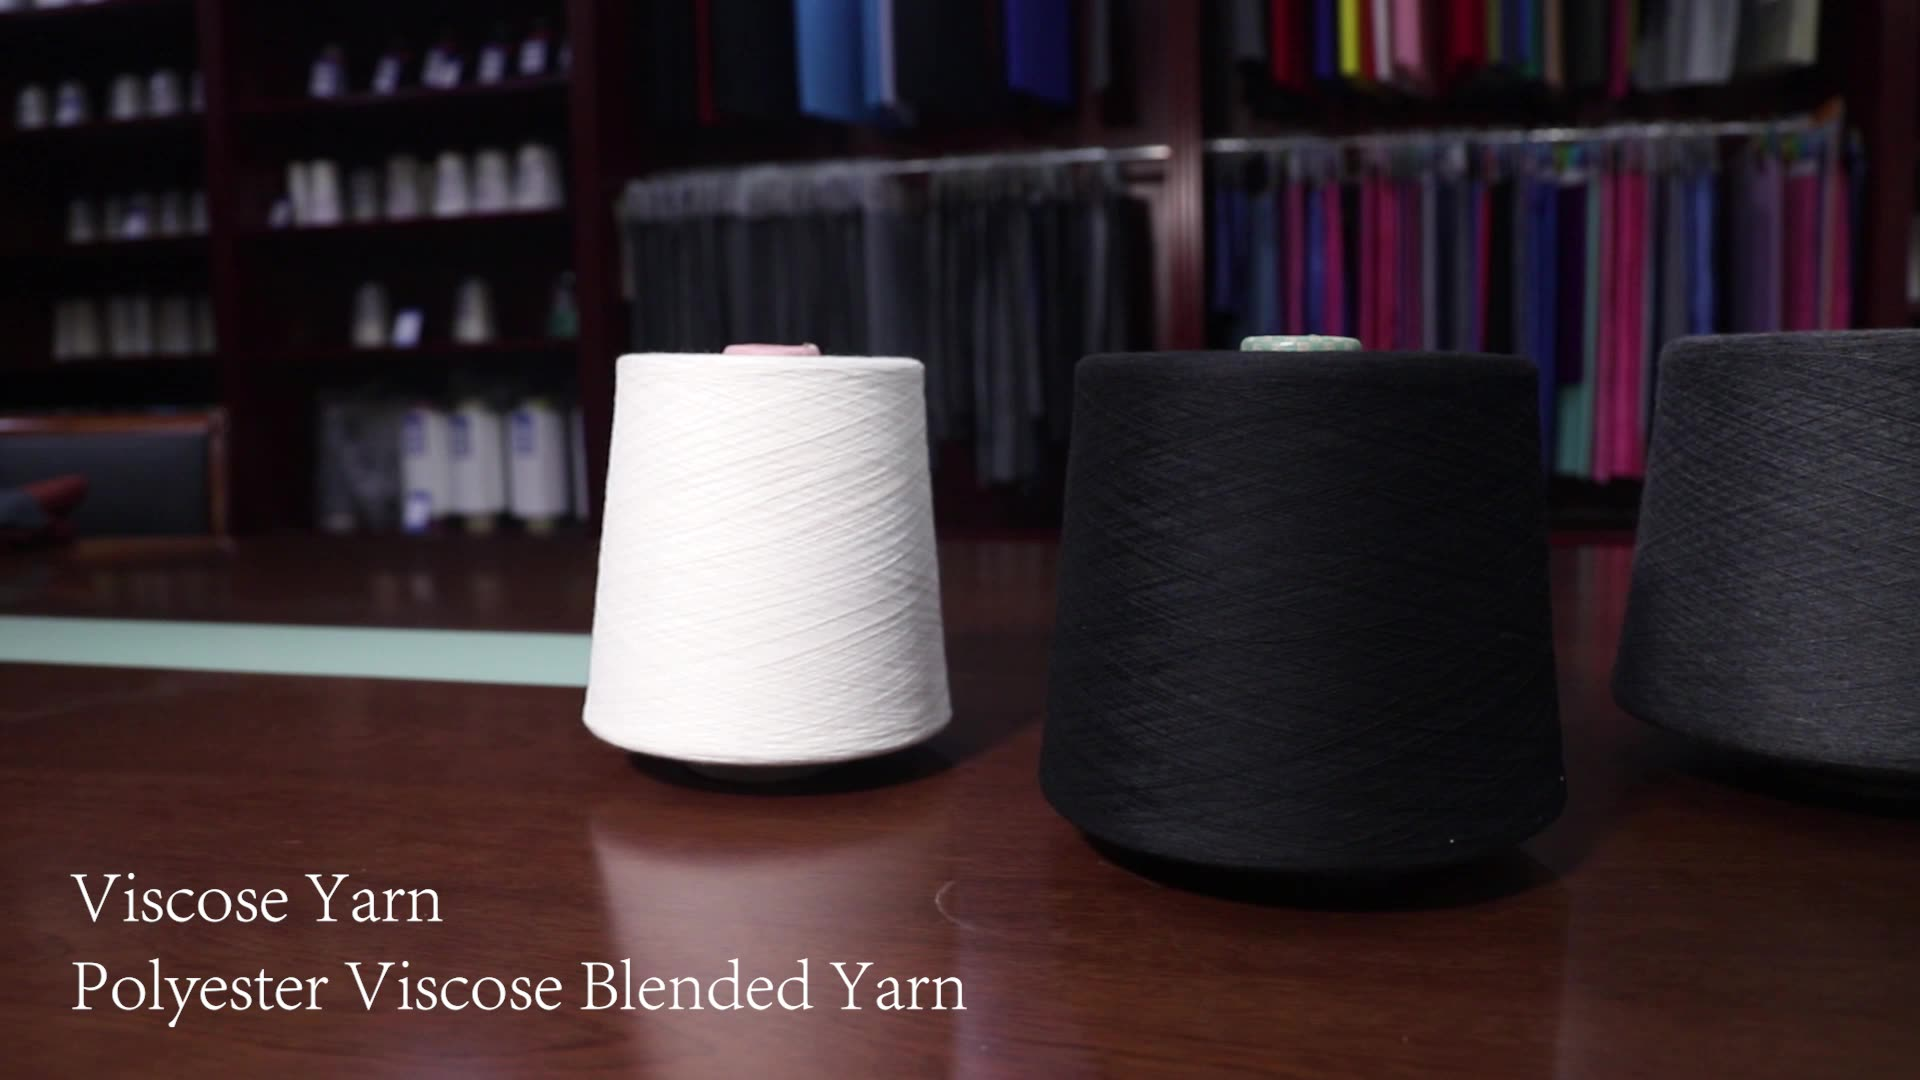 20S/2 poly viscose blended polyester viscose yarn for knitting